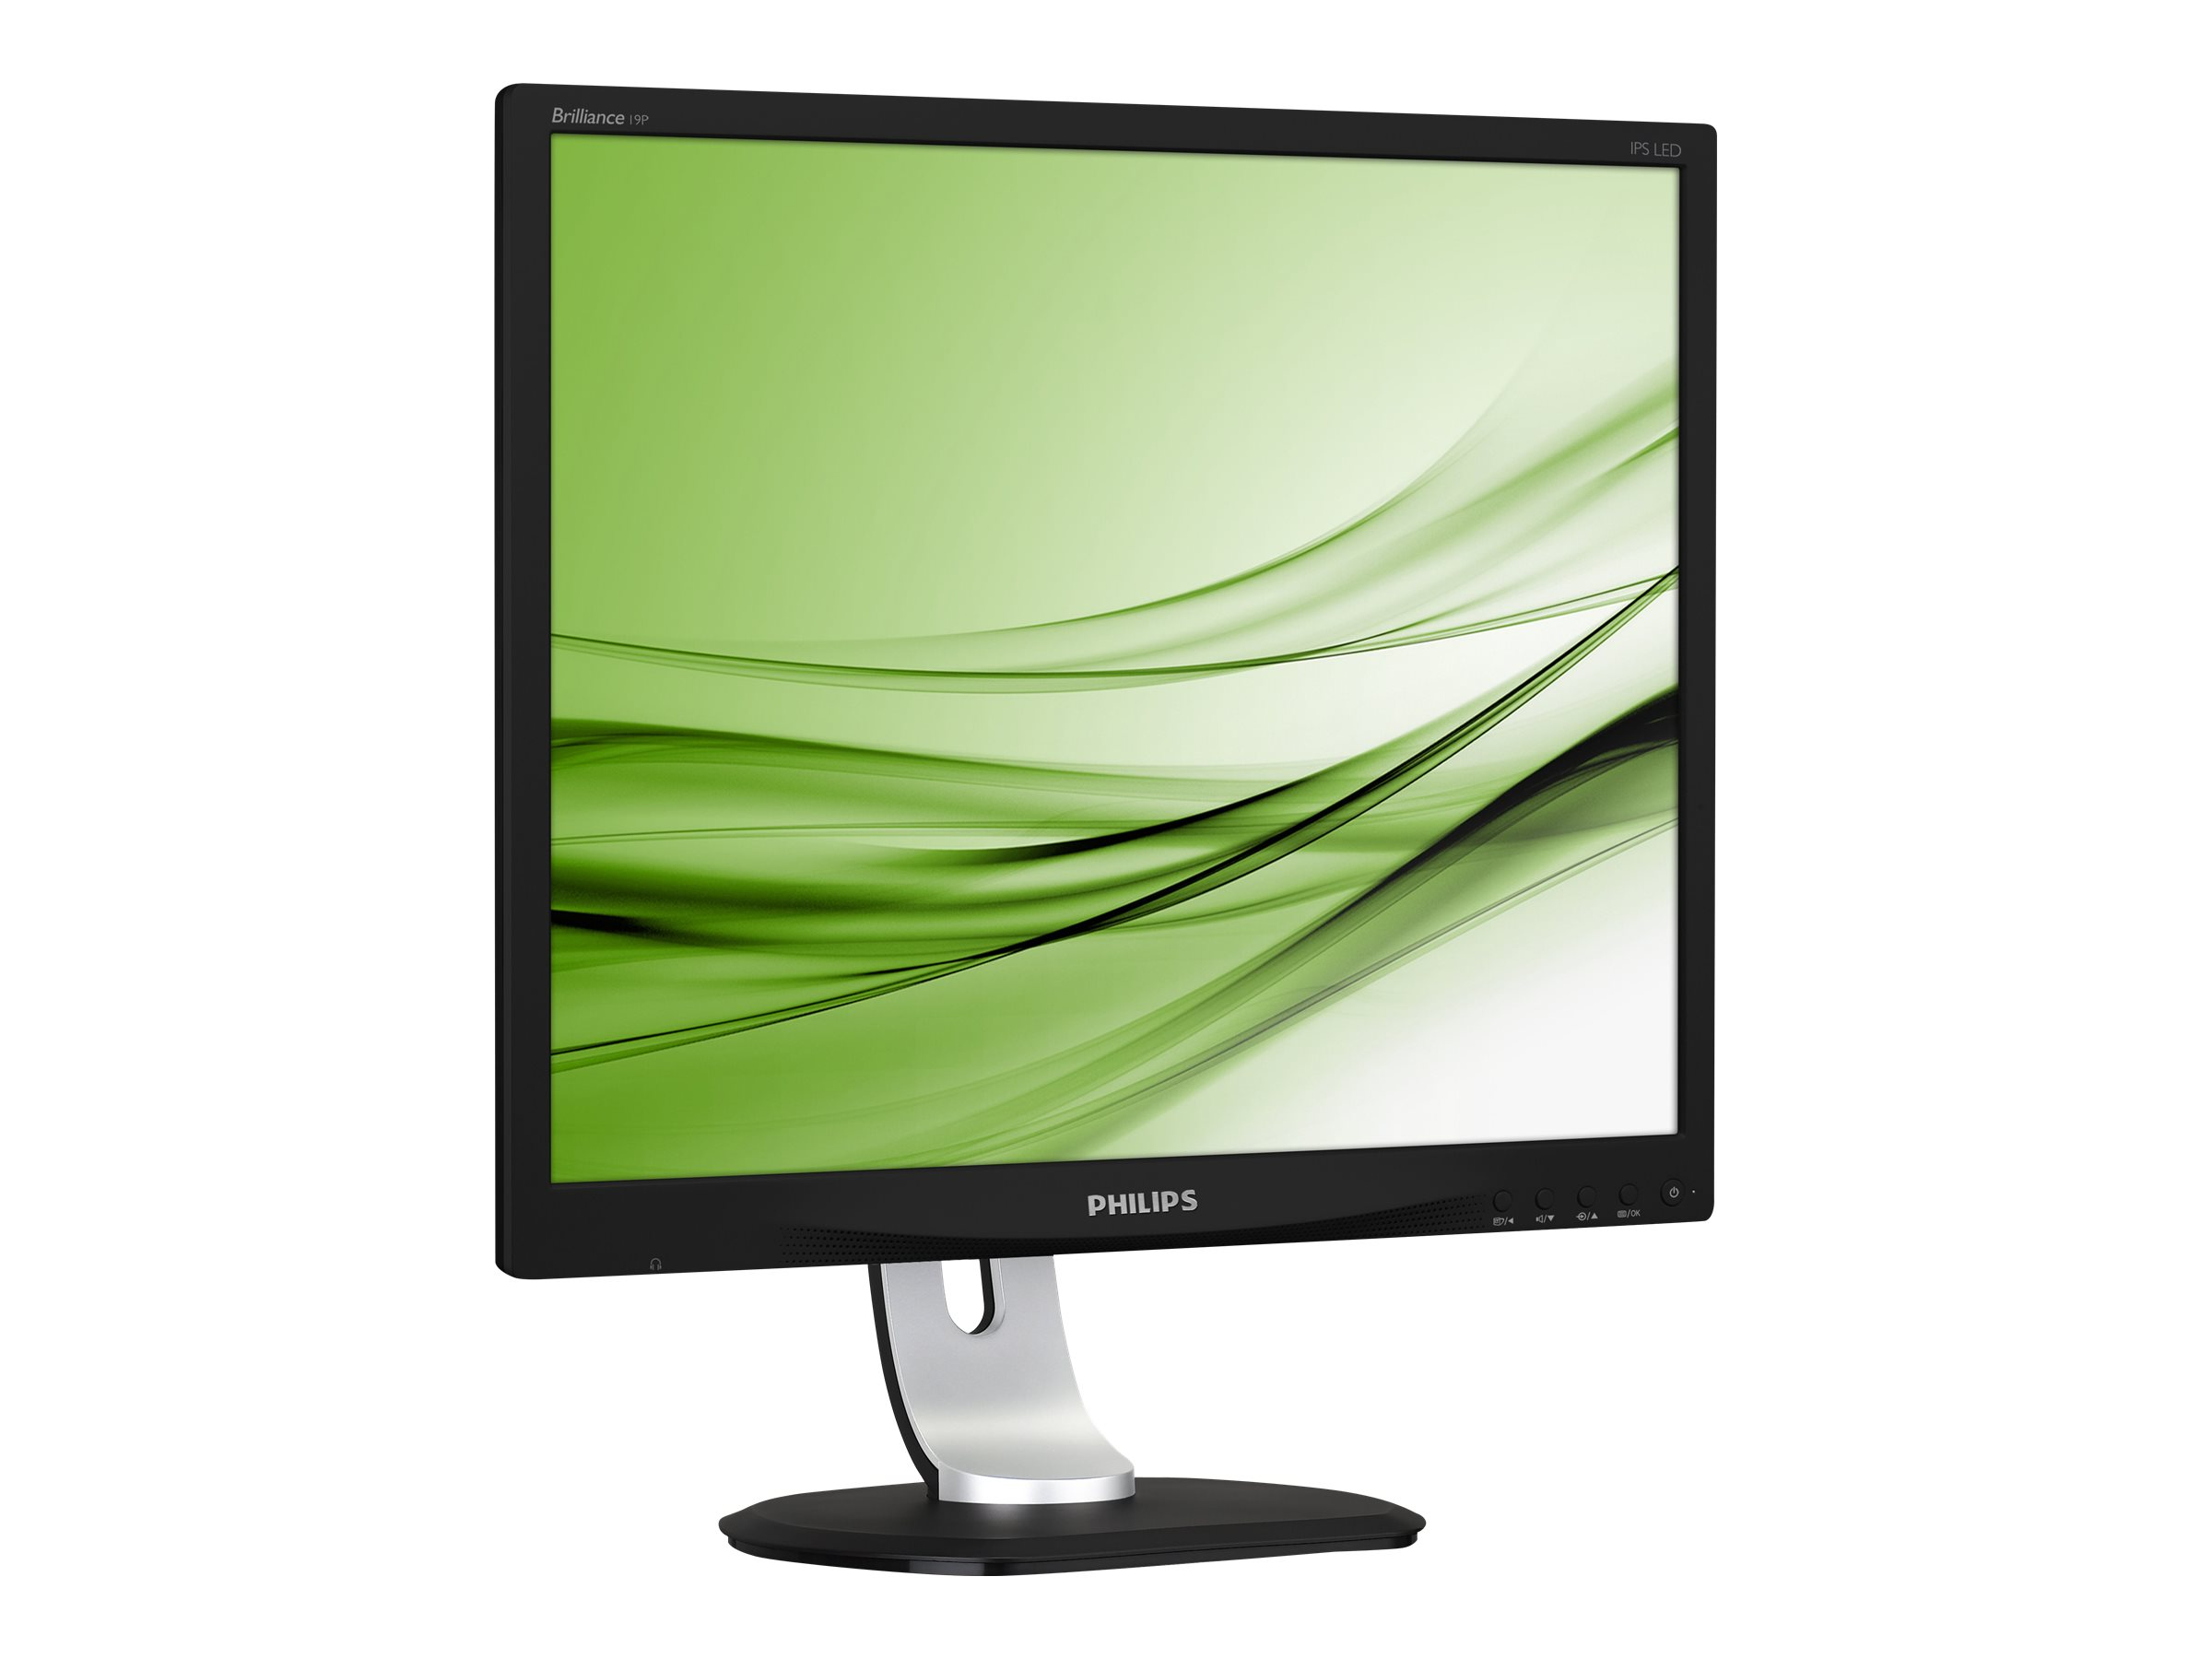 Philips Brilliance P-line 19P4QYEB - LED-Monitor - 48.3 cm (19